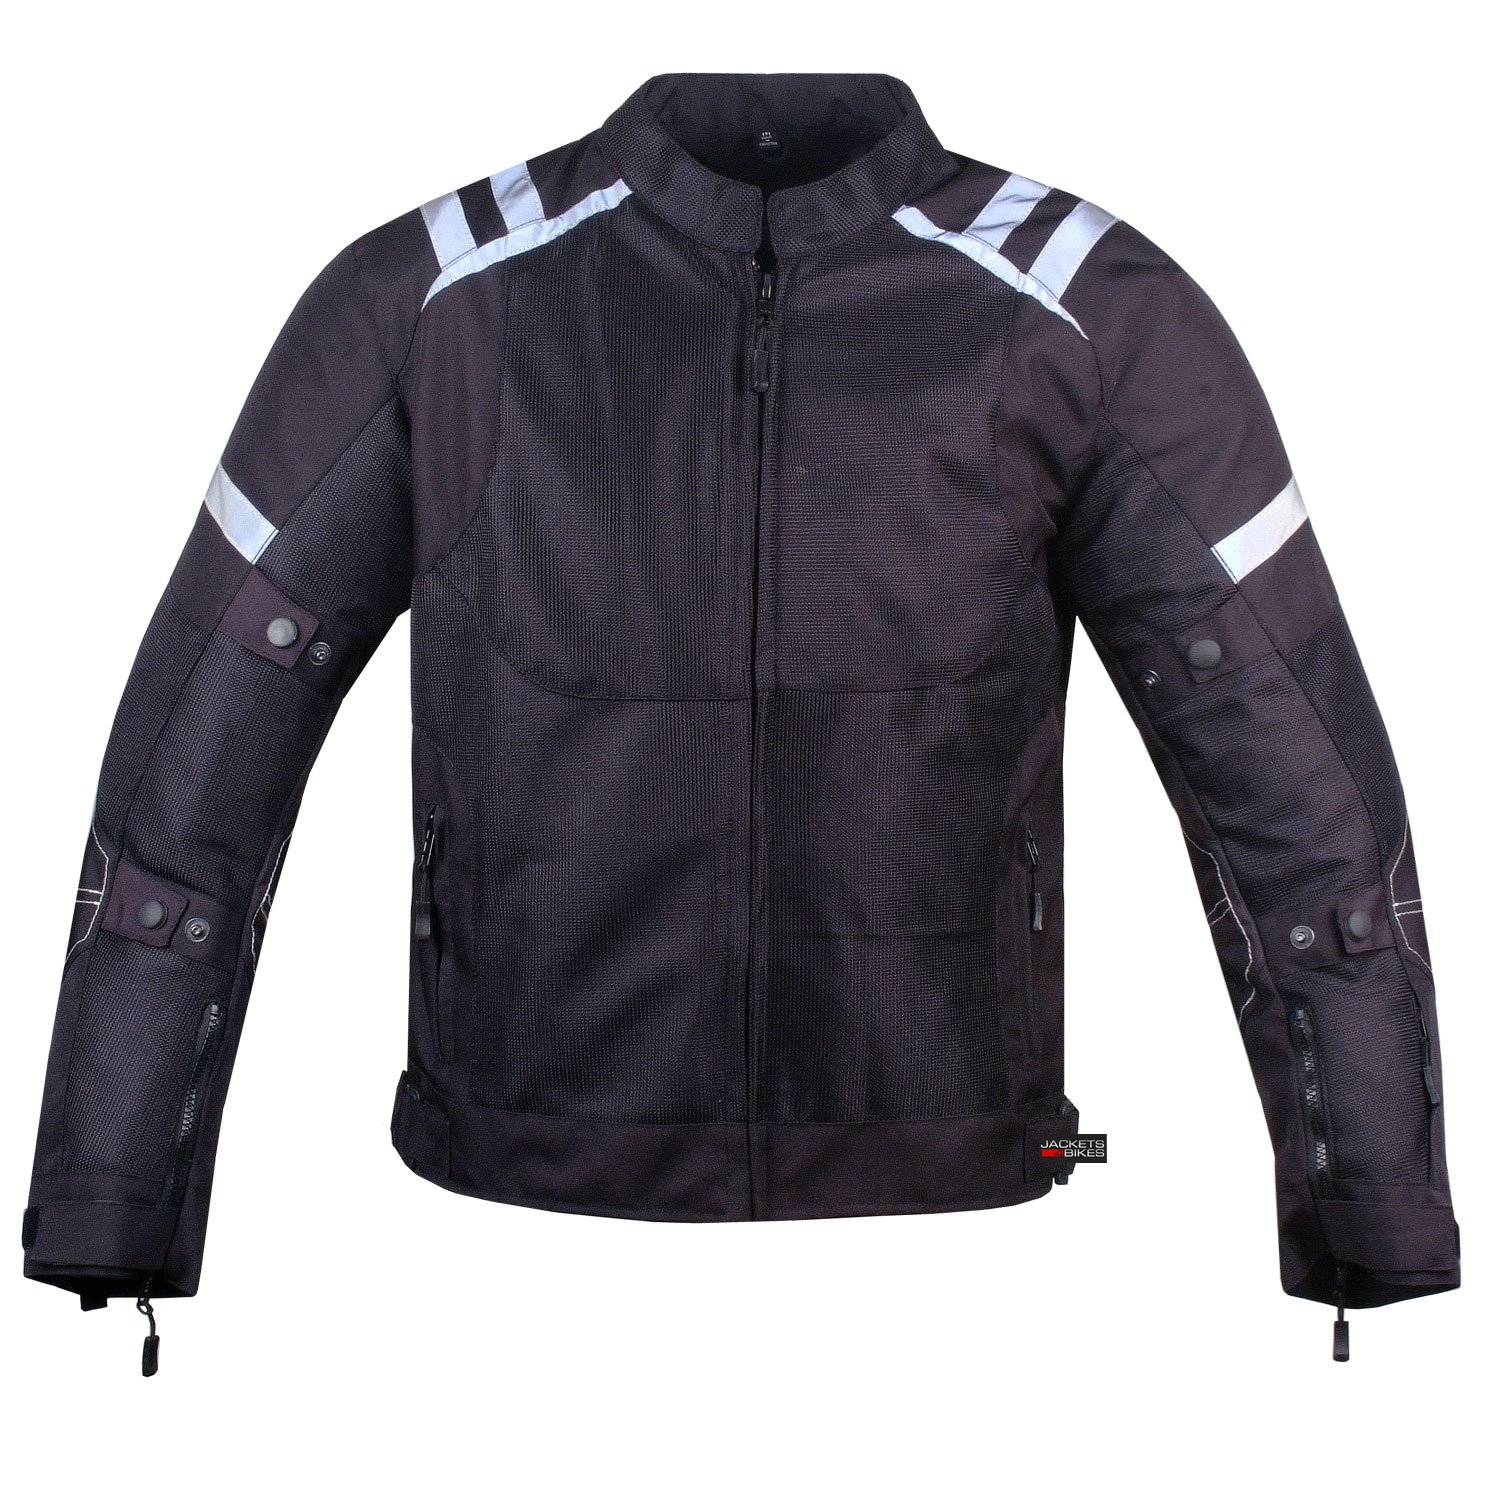 Mens Storm Mesh Summer Armored Reflective Waterproof Black Motorcycle Jacket XXL